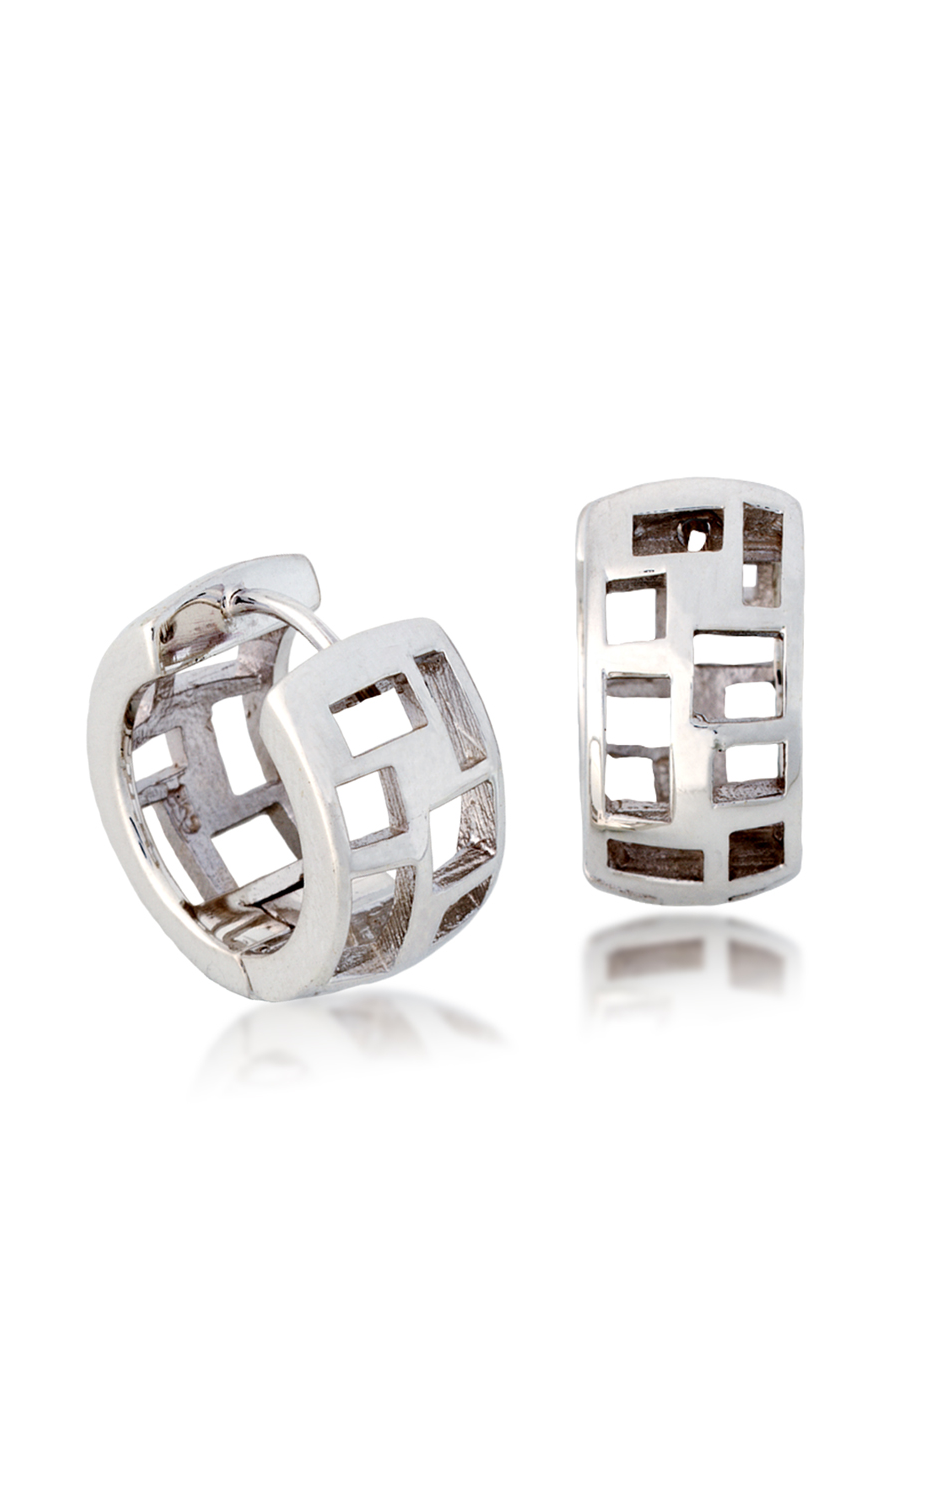 Zina Contemporary Earrings B610 product image